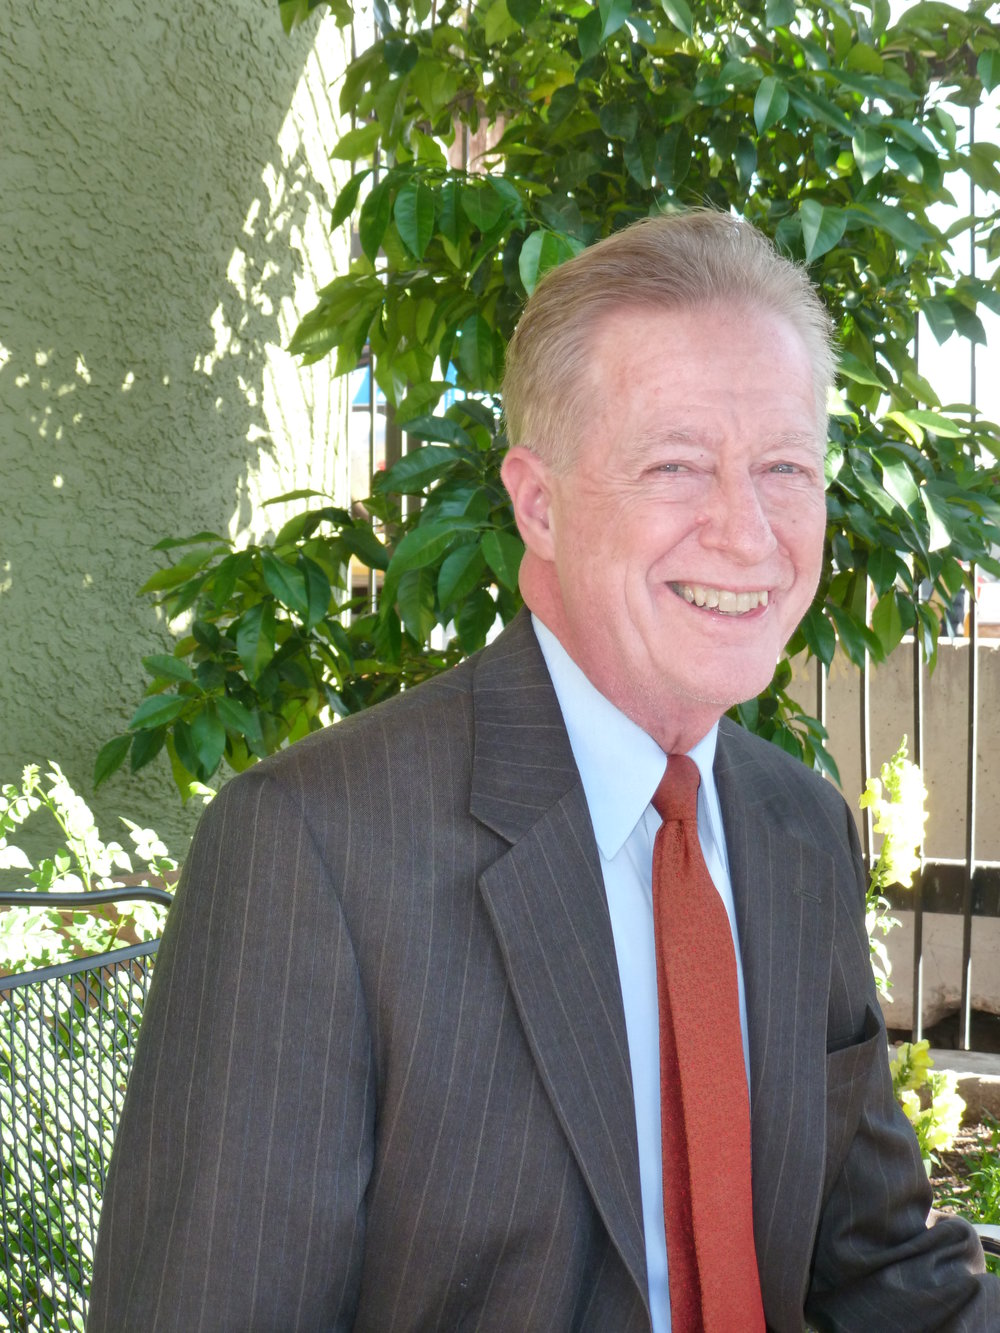 Robert Scanlan, Board Member